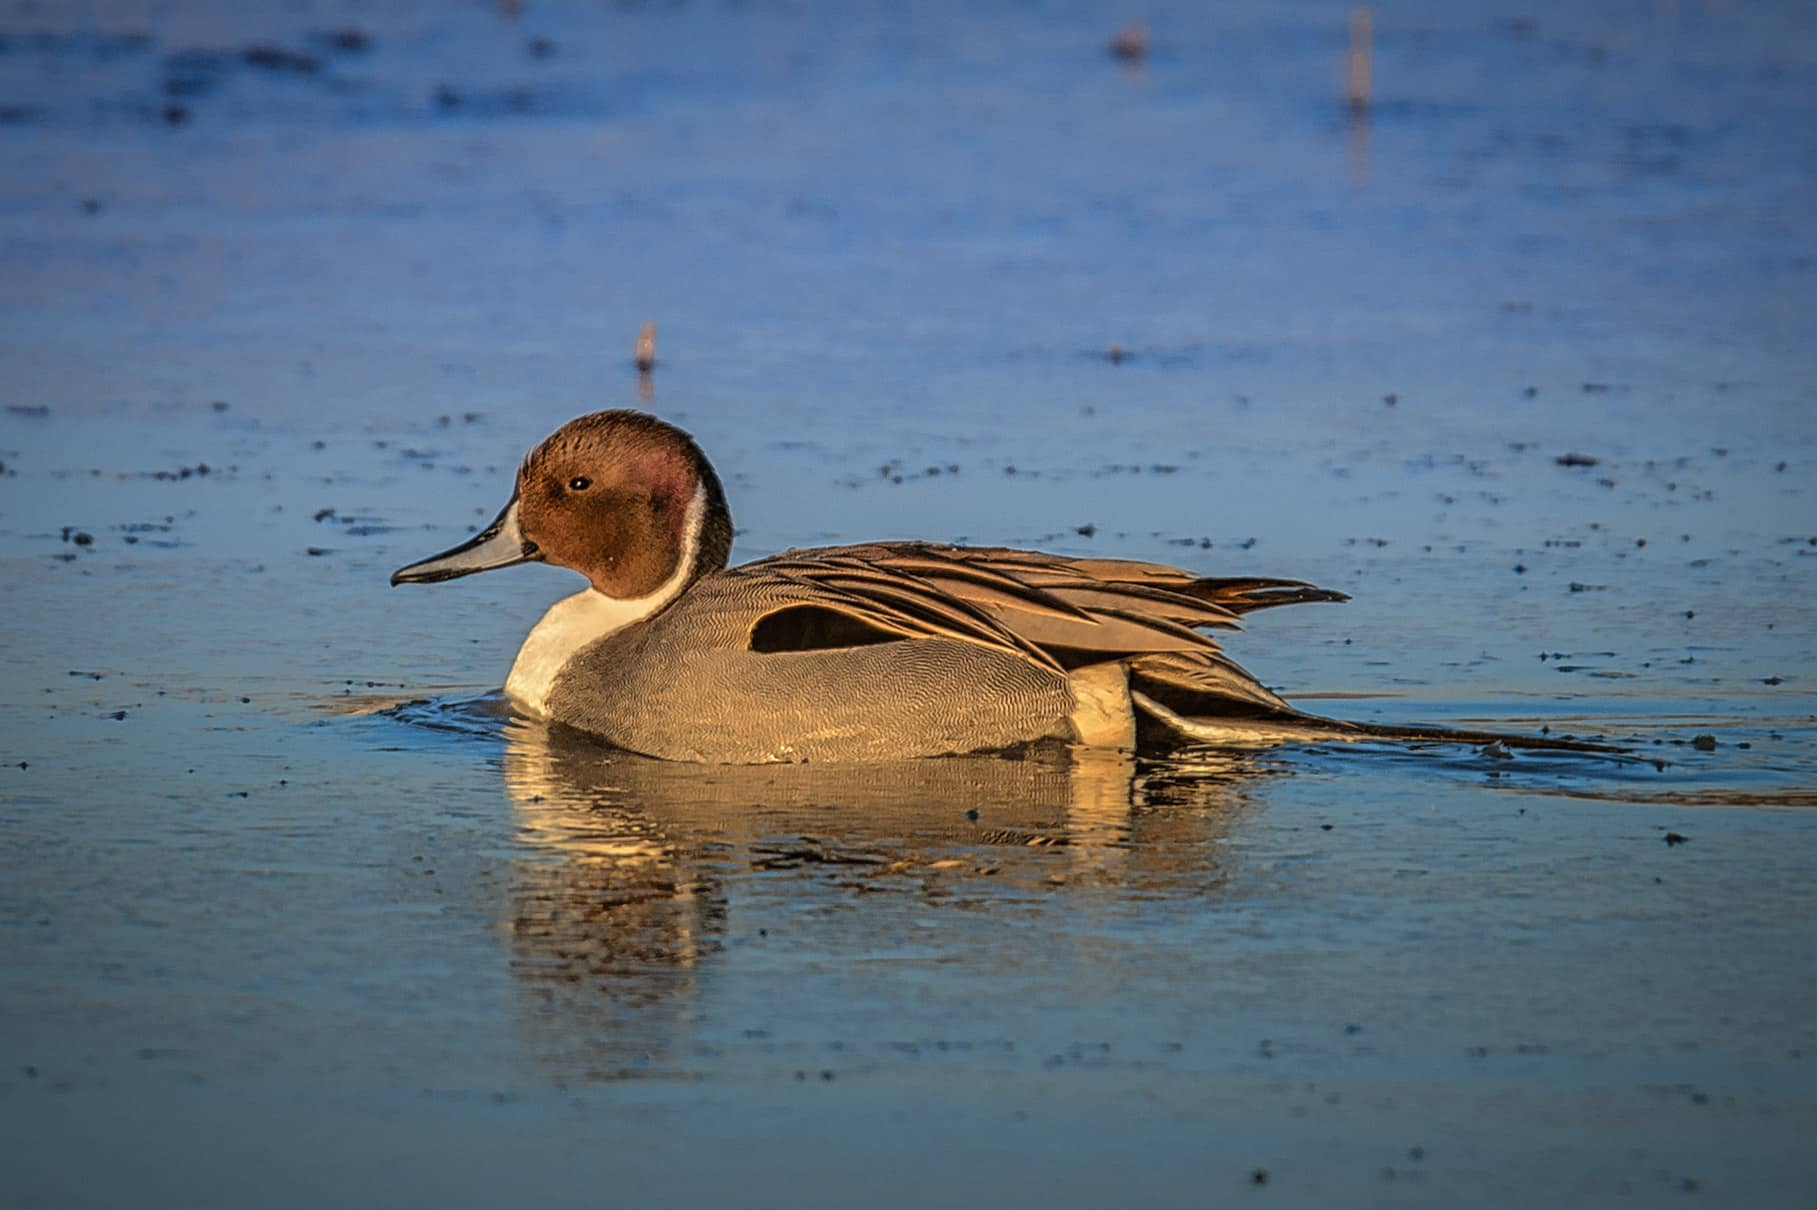 A Northern Pintail Duck cruises in a pond in Bosque del Apache National Wildlife Refuge near Socorro, New Mexico.